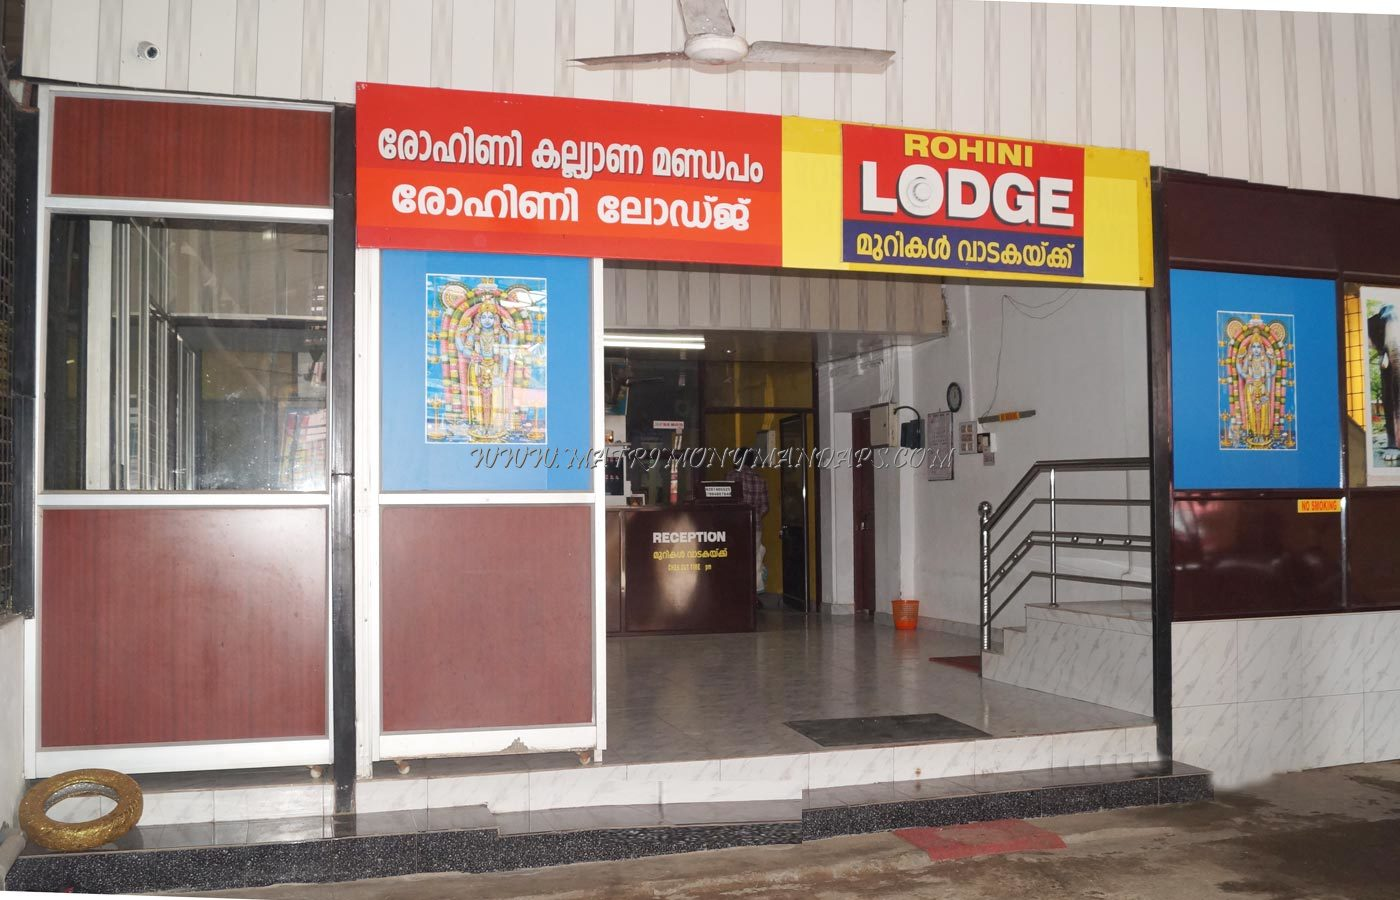 Find More Marriage Halls in East Nada